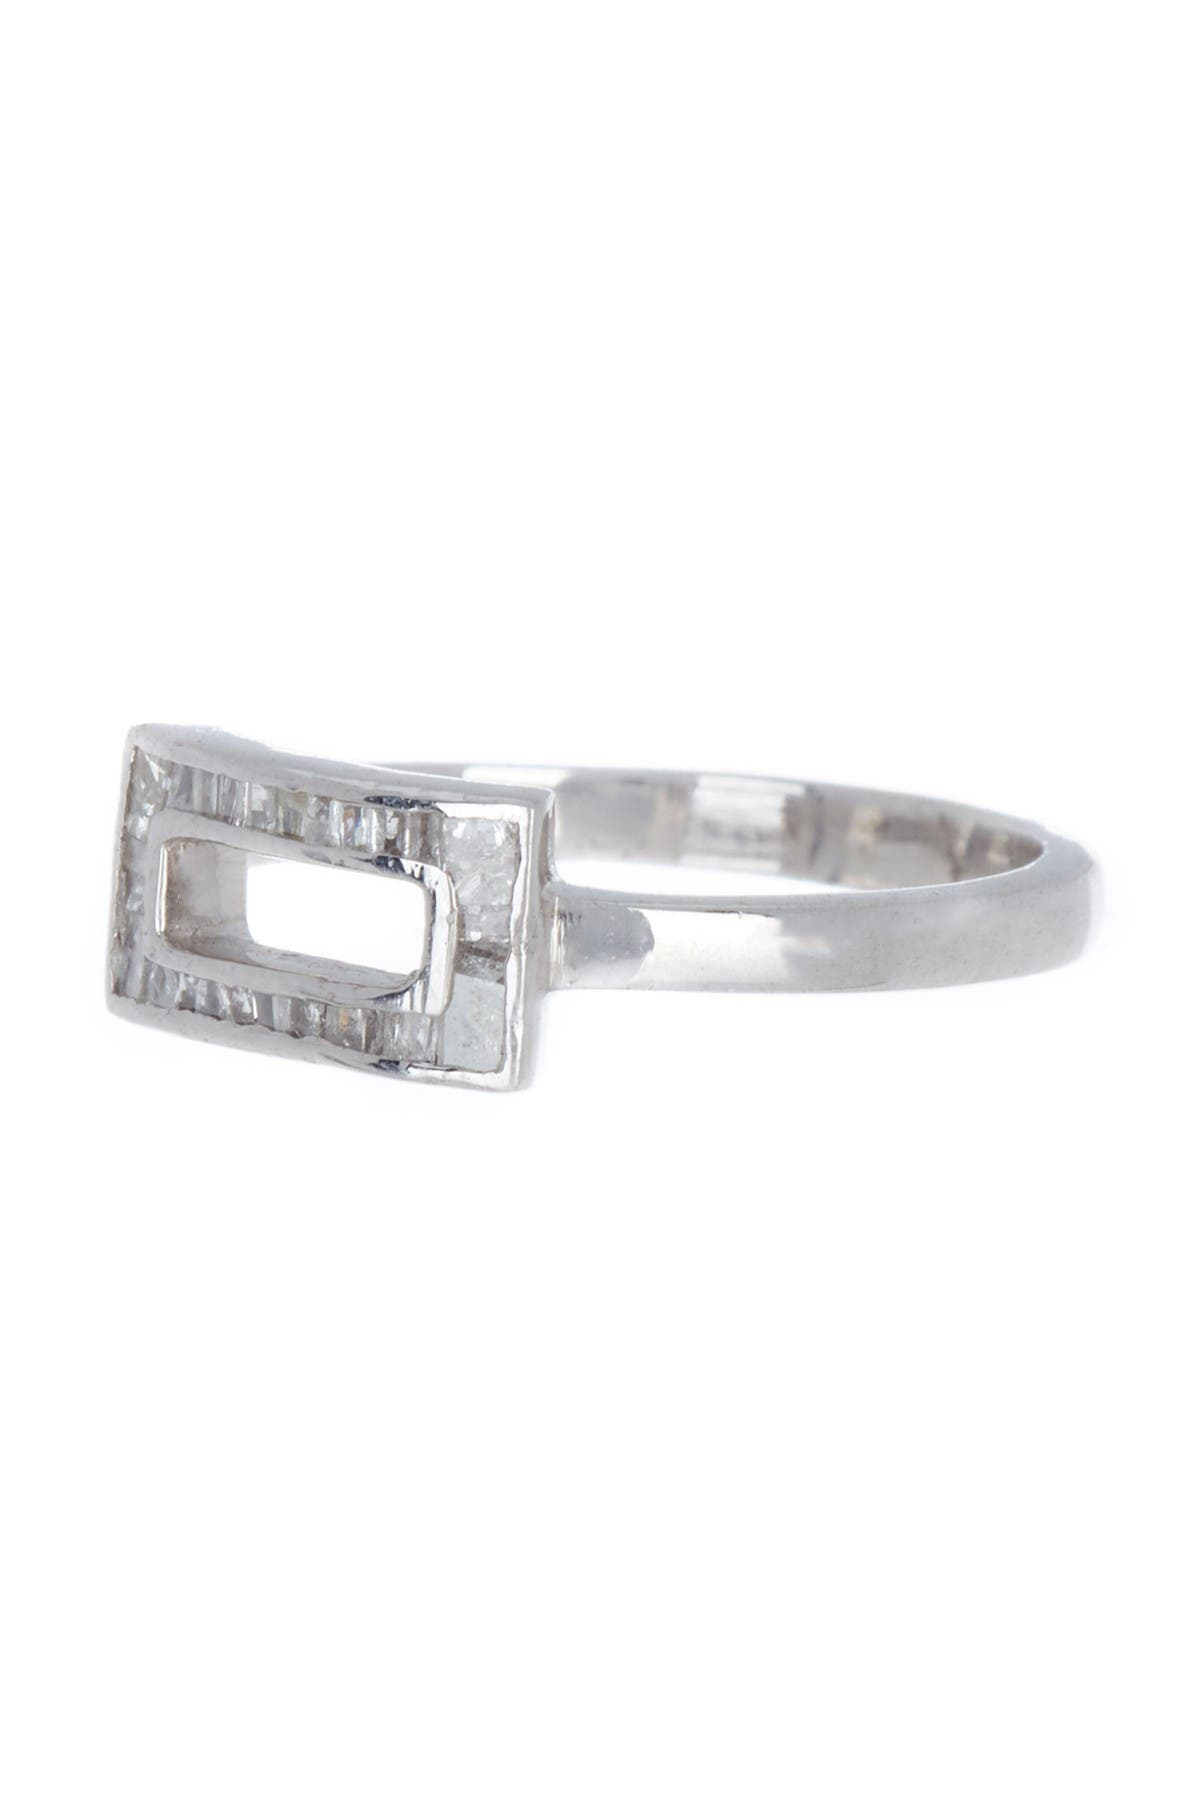 Image of Forever Creations USA Inc. Sterling Silver Diamond Open Rectangle Ring - 0.26 ctw